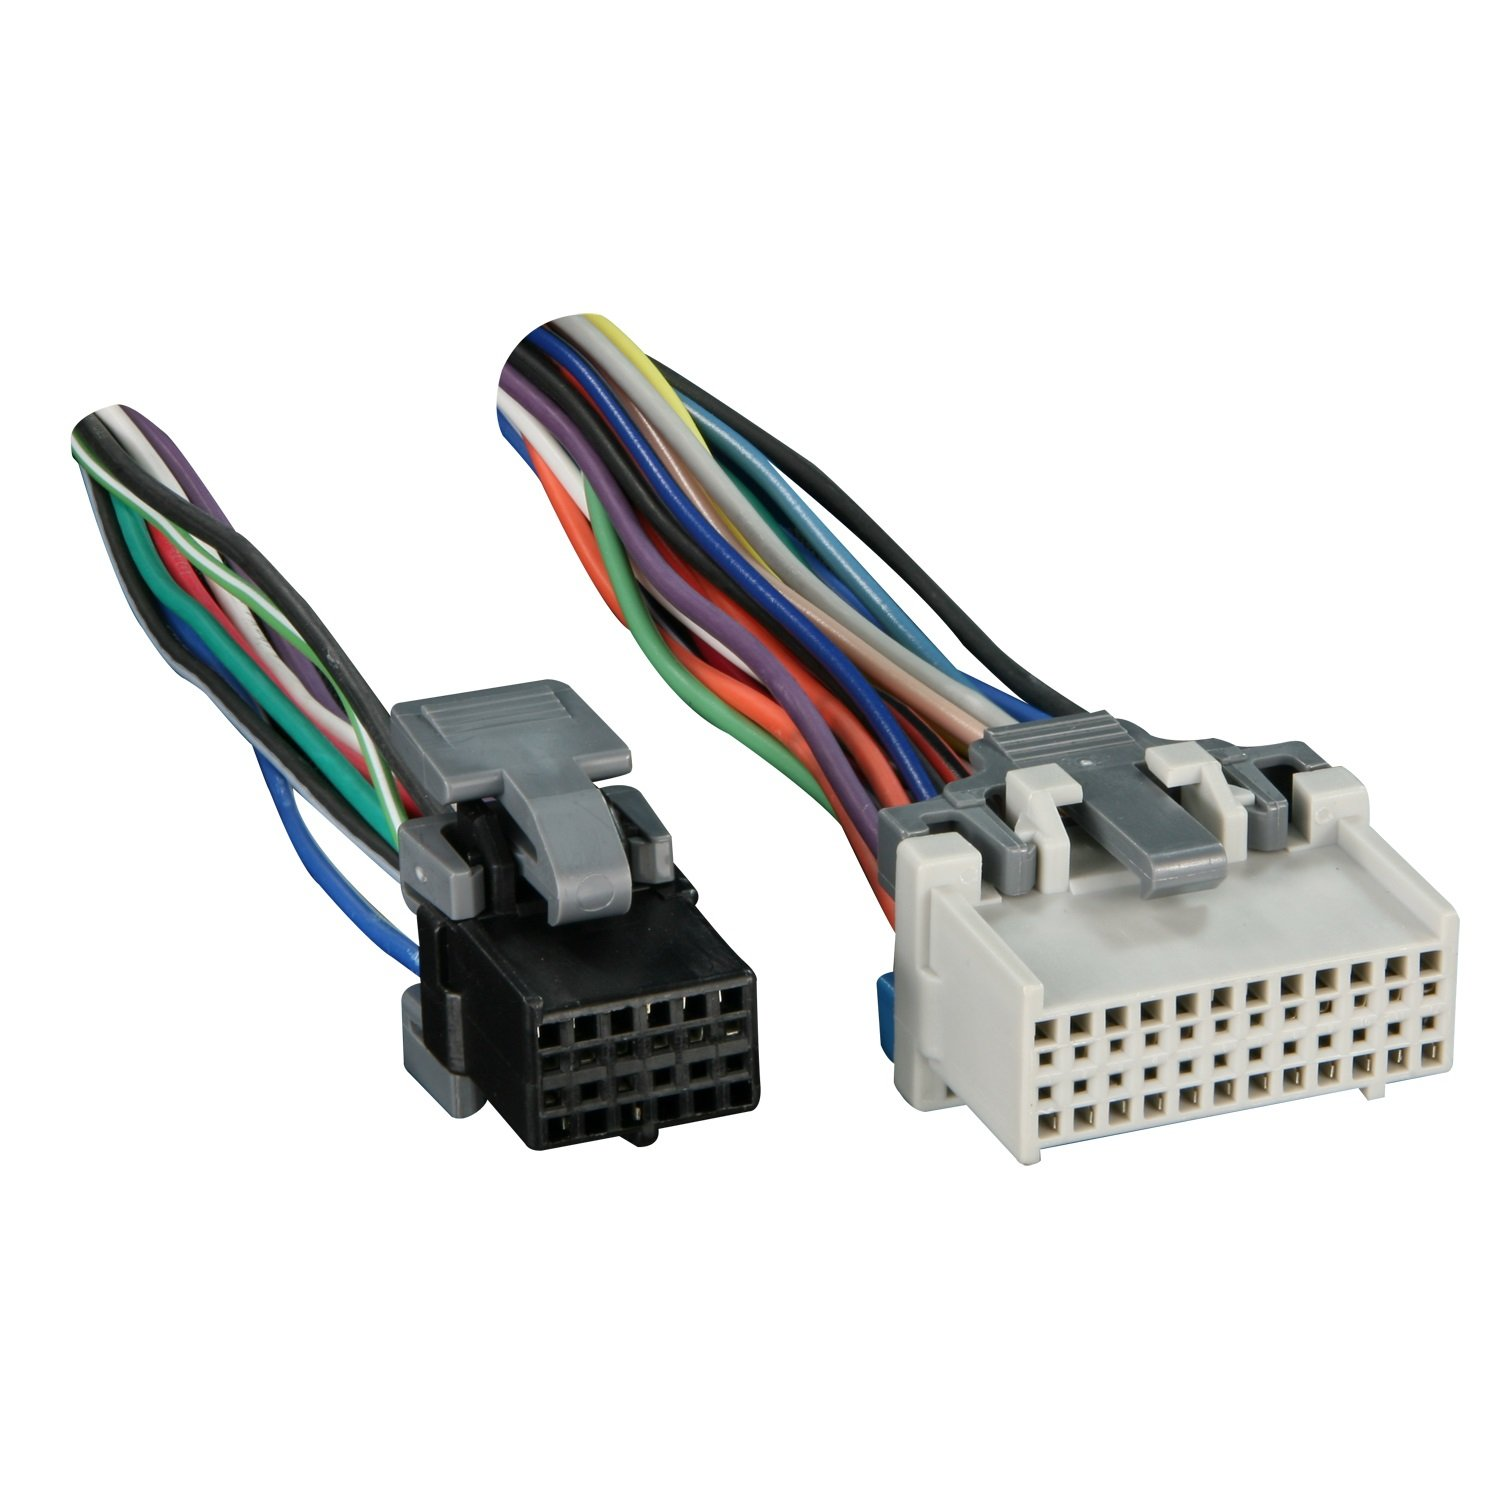 711log4bdML._SL1500_ amazon com metra turbowires 71 2003 1 wiring harness car electronics Car Stereo Wiring Colors at edmiracle.co